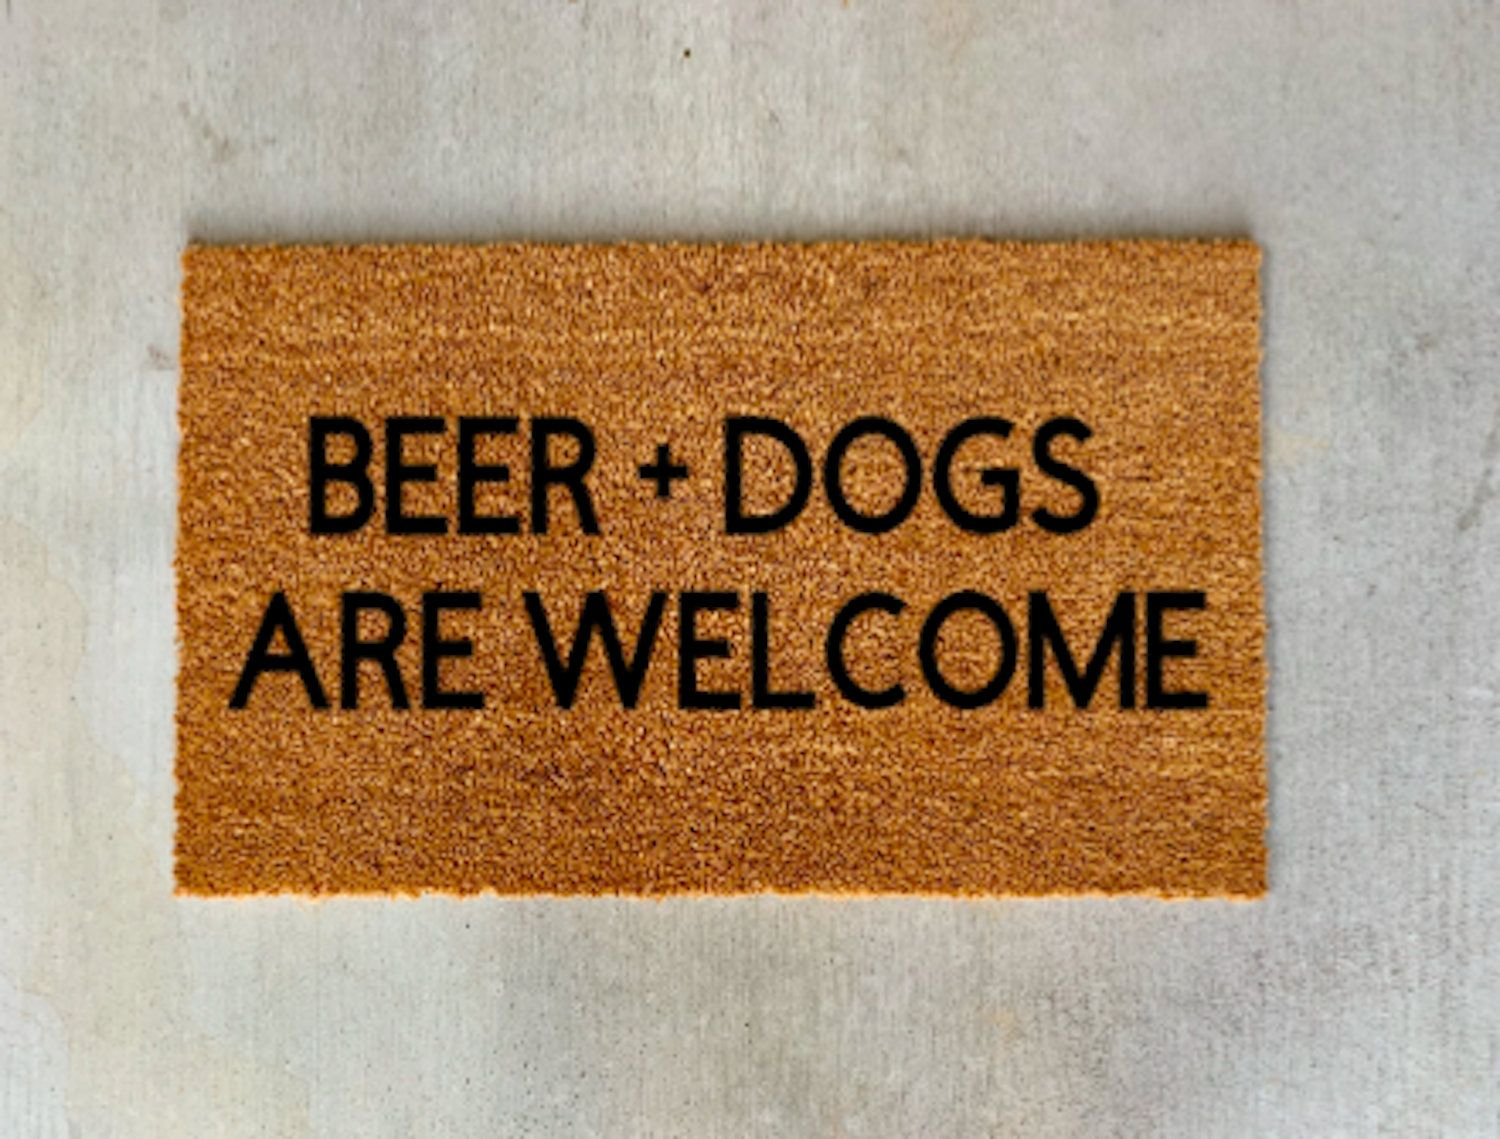 Beer Dogs Are Welcome Doormat Funny Doormat Beer And Dogs Are